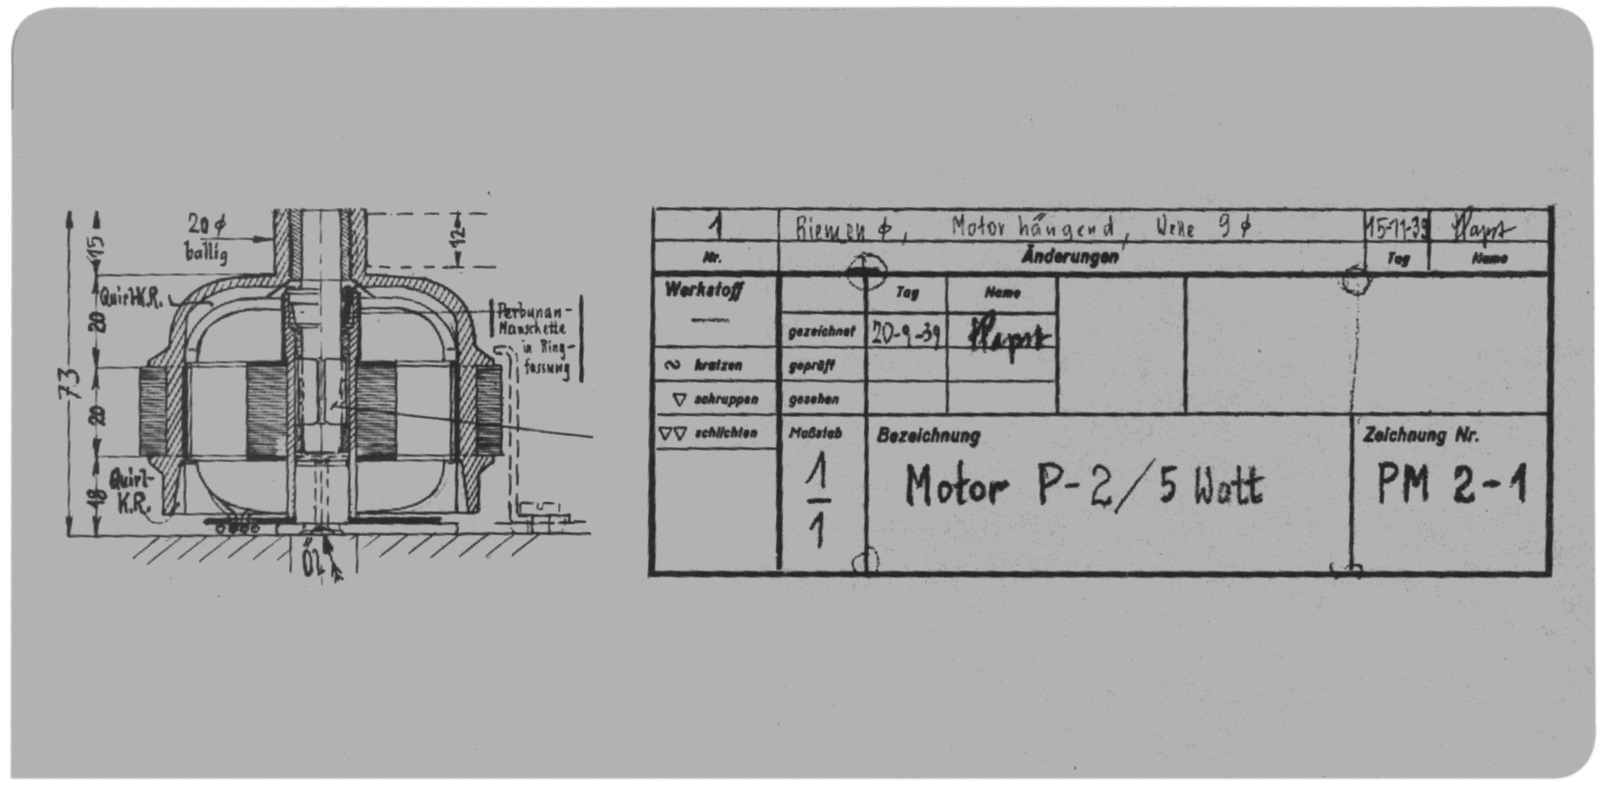 A sketch of the external rotor motor, that was developed by Hermann Papst and was manufactured in 1939 in small volume.